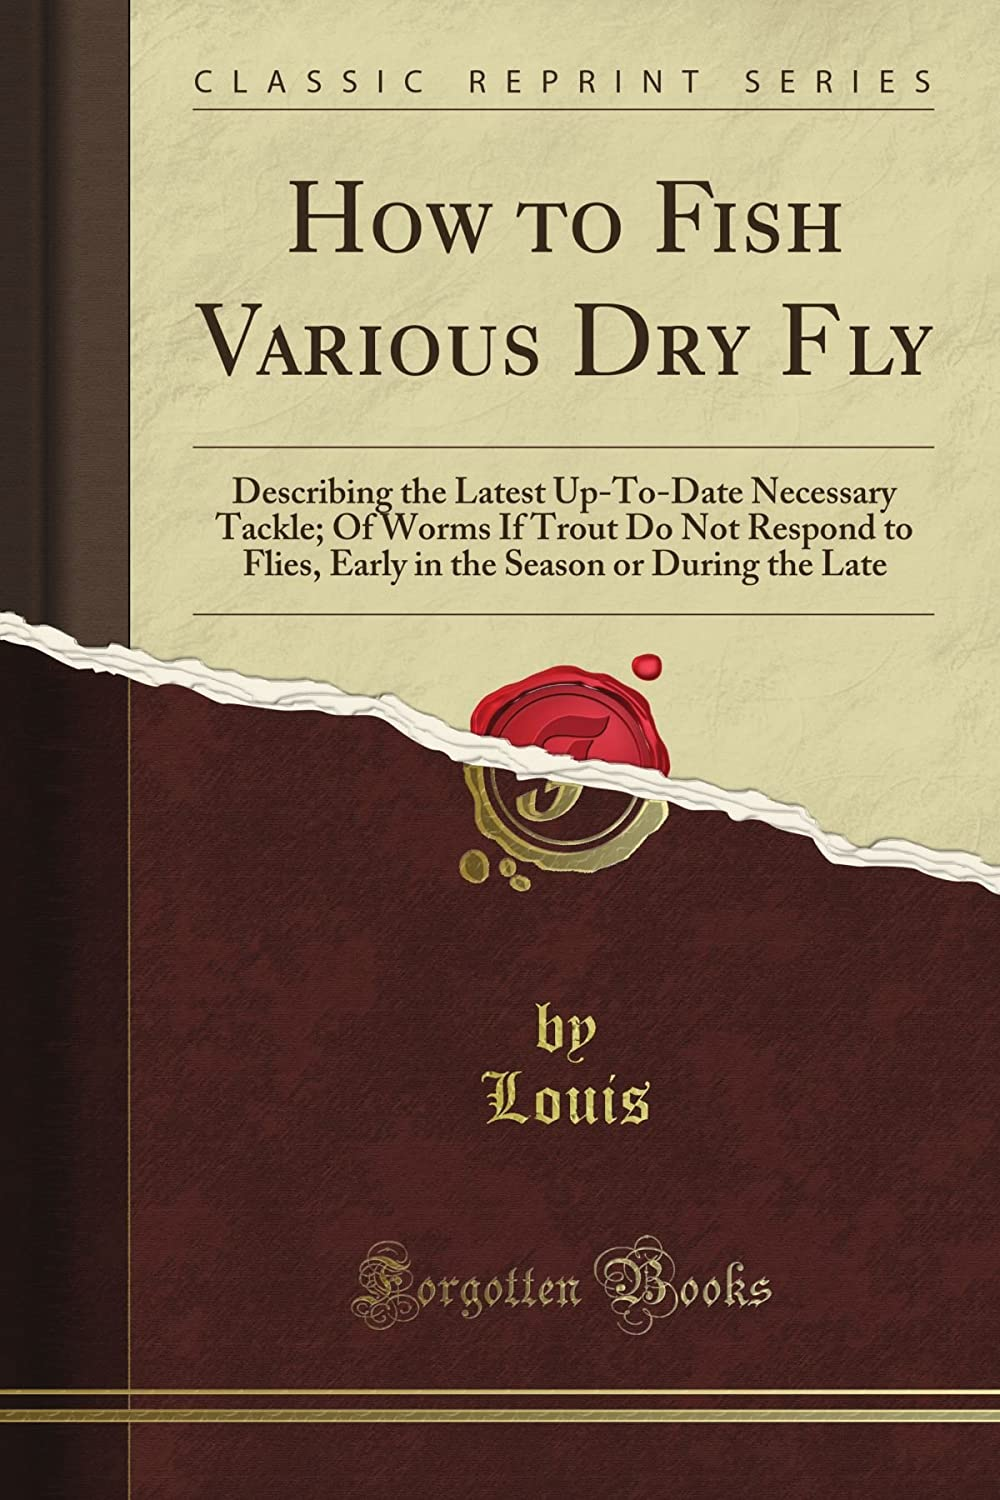 How to Fish Various Dry Fly: Describing the Latest Up-To-Date Necessary Tackle; Of Worms If Trout Do Not Respond to Flies, Early in the Season or During the Late (Classic Reprint)